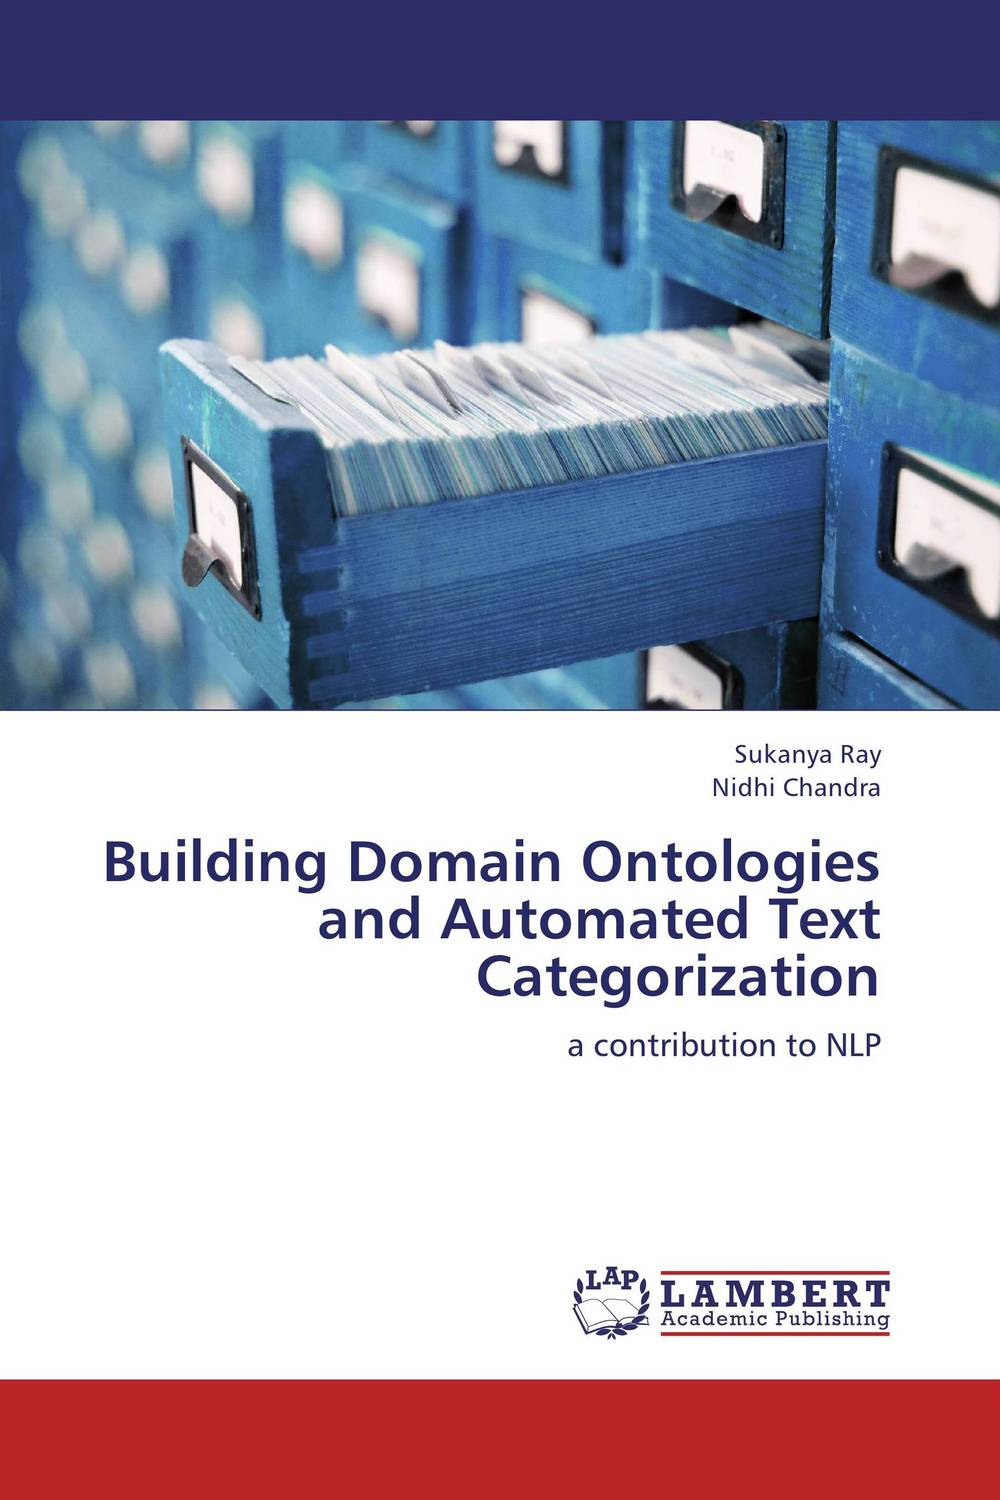 Building Domain Ontologies and Automated Text Categorization key based text watermarking of e text documents using z axis